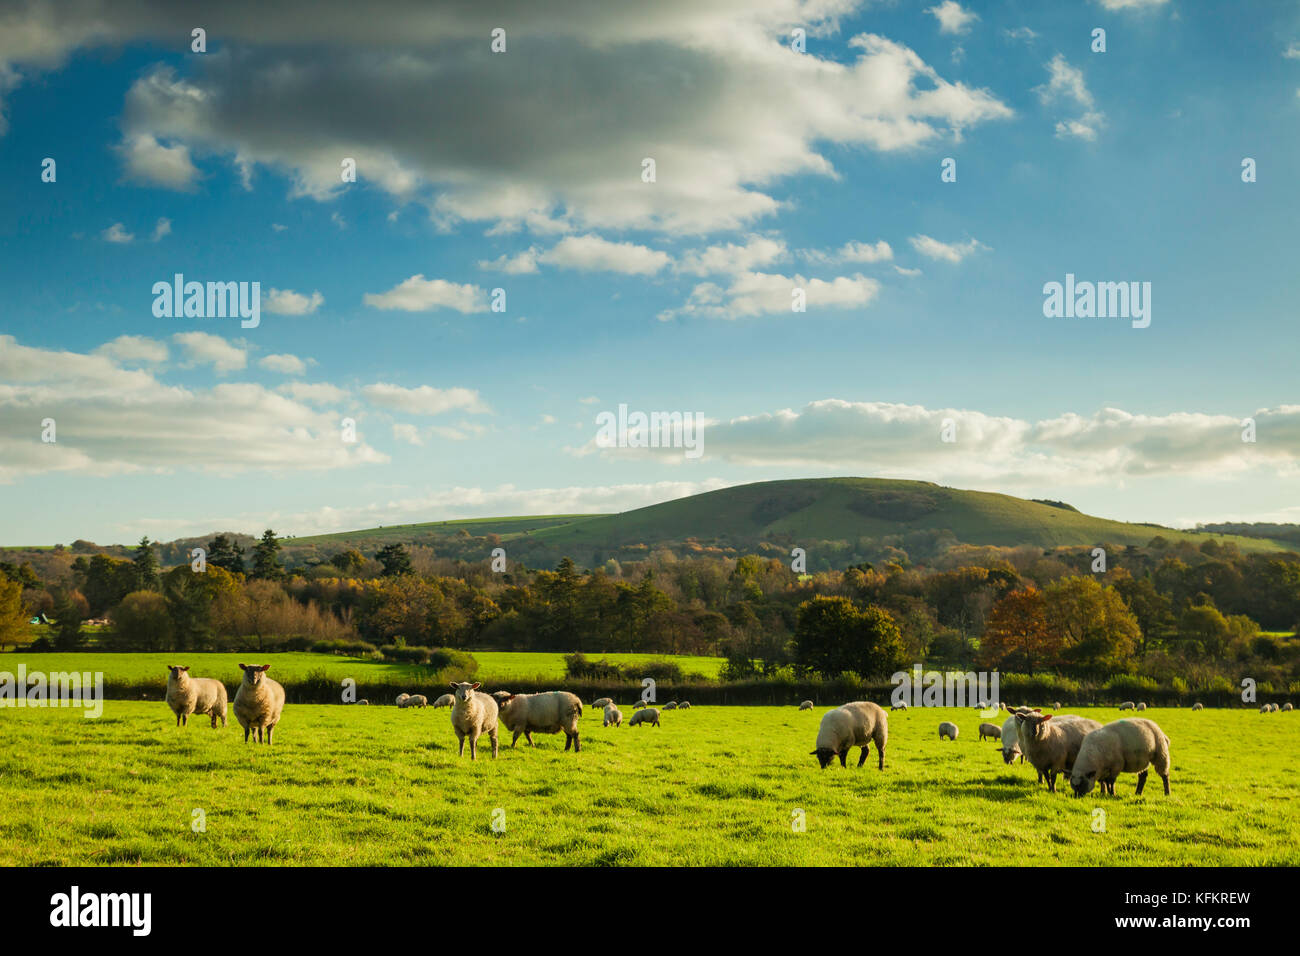 Sheep in South Downs National Park, West Sussex, England. Stock Photo